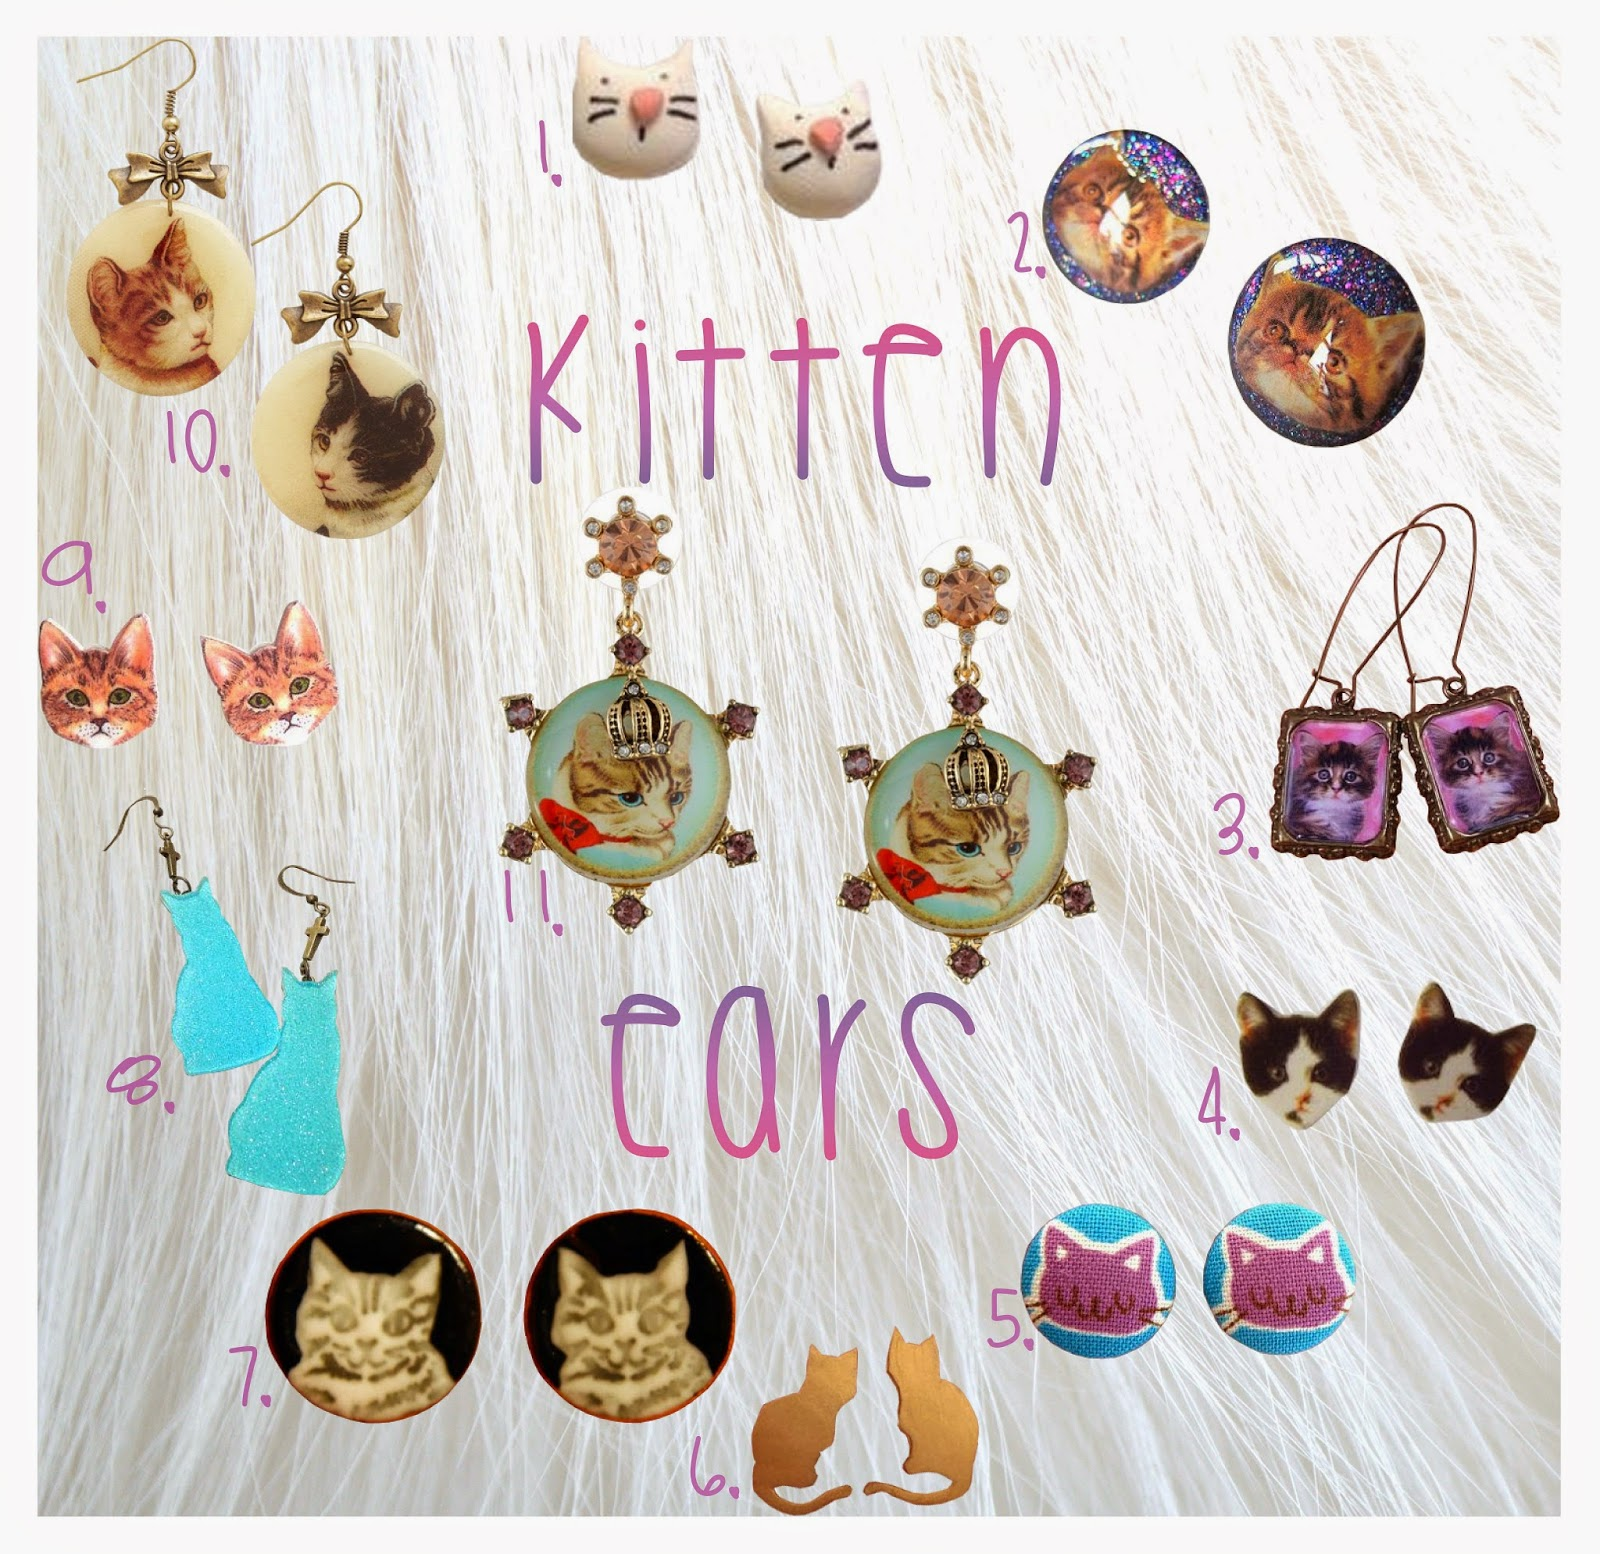 cat-jewelry, kitten-jewelry, kitty-jewelry, kitten-earrings